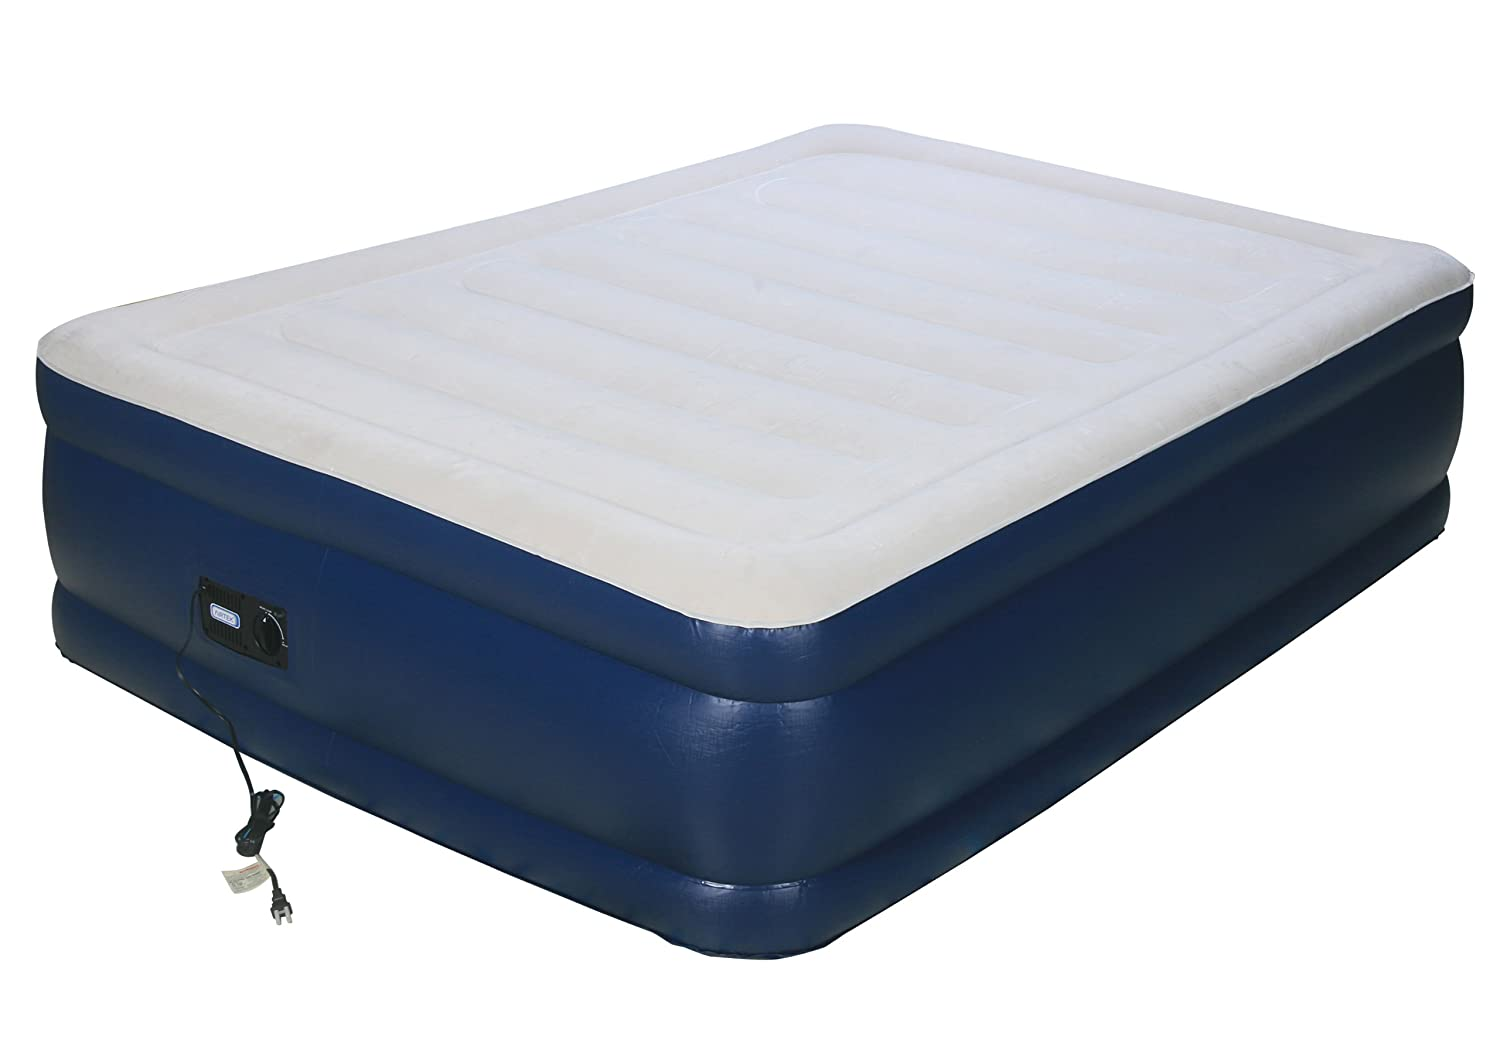 Airtek Full Keystone series Premium velvety Flocked top Air Mattress Airbed with Patented high-end Giga valve for ultra fast deflation, extra thick 2ABF04005 Interworld Commerce Inc.